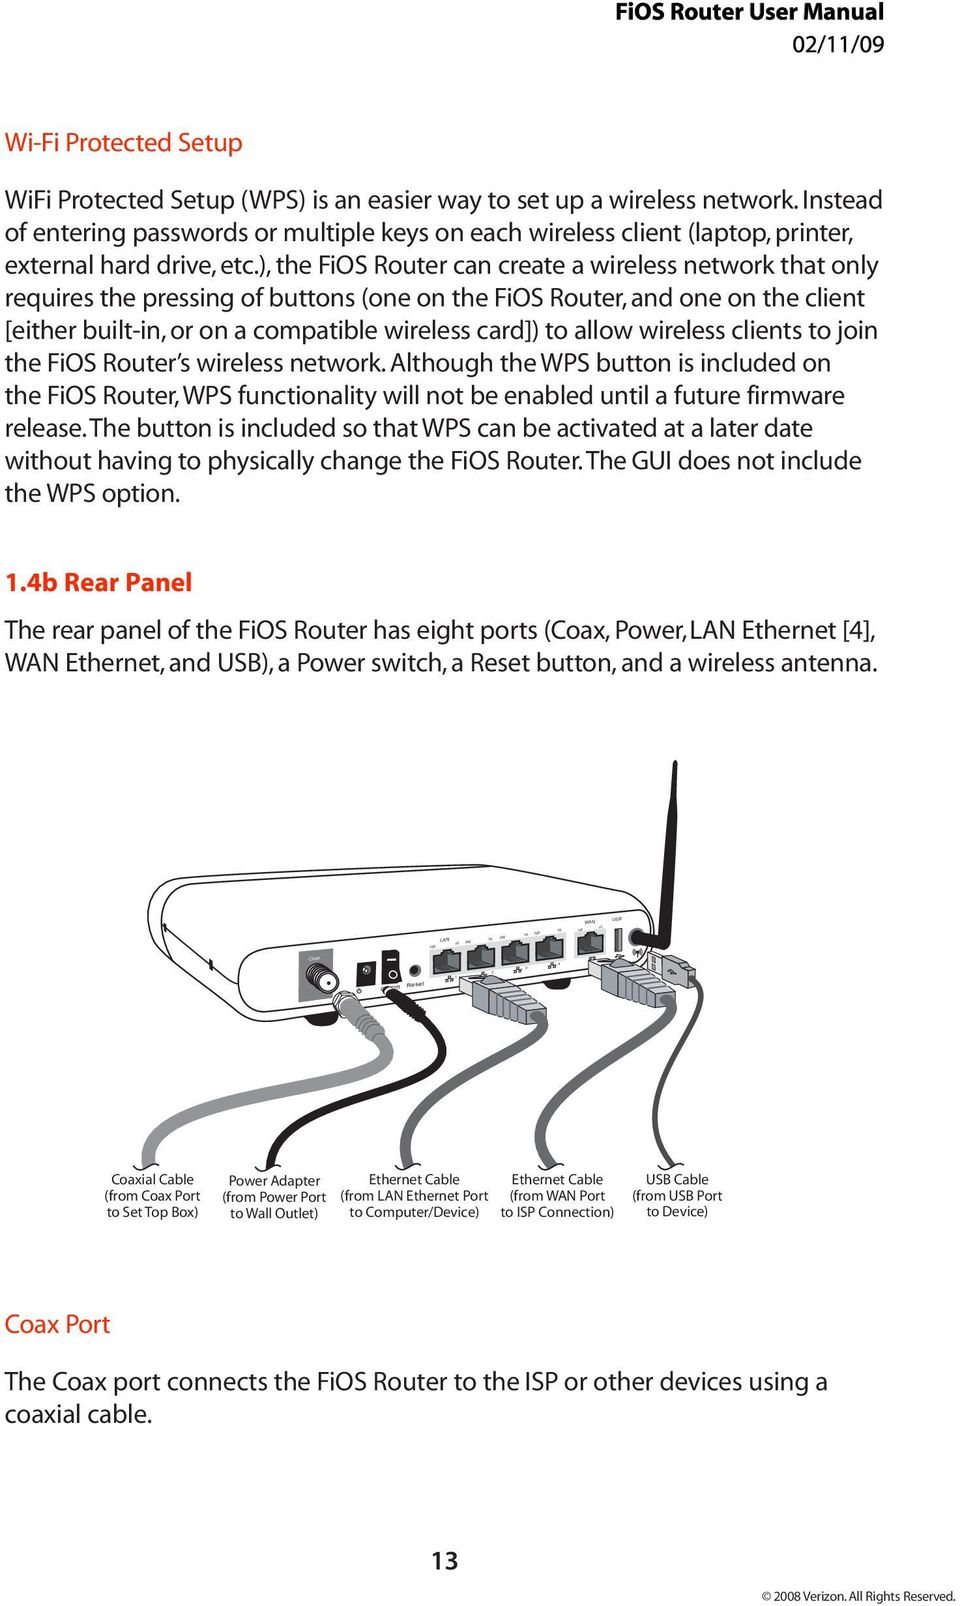 Verizon Fios Router Mi424wr User Manual Pdf Ethernet Wall Jack Wiring The Can Create A Wireless Network That Only Requires Pressing Of